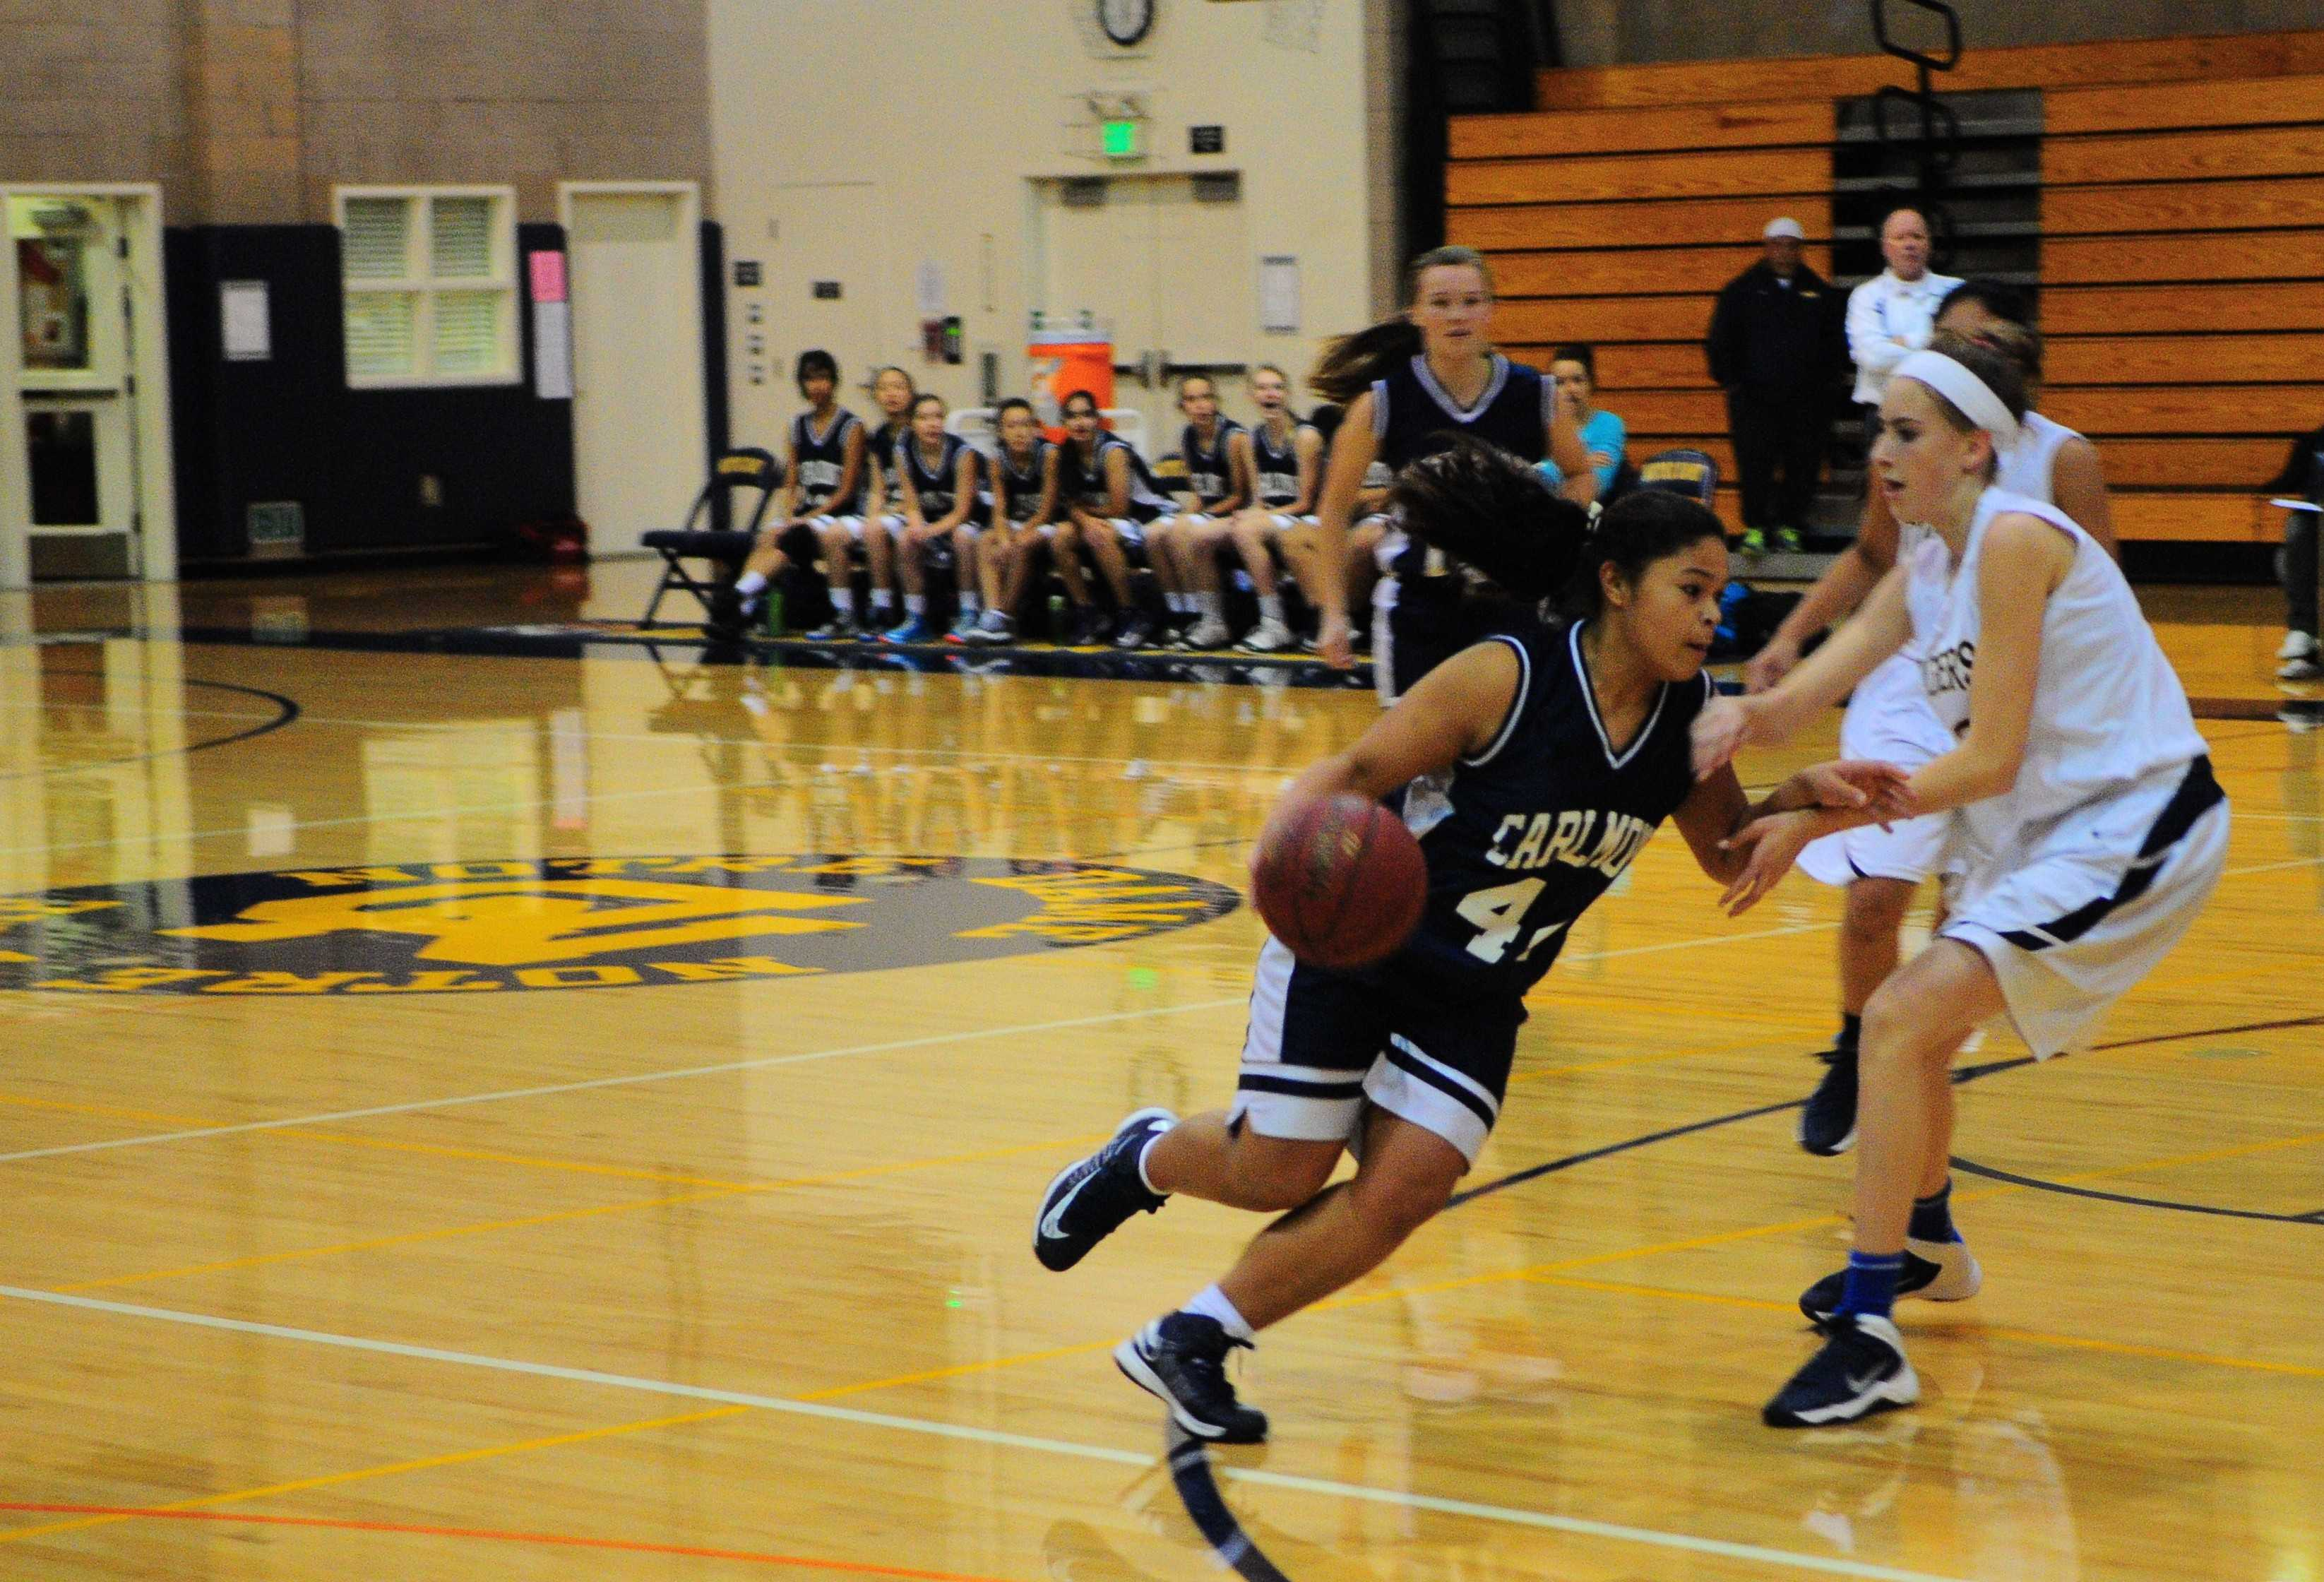 Sophomore Vianka Adamovitch dribbles around her opponent, trying to shoot a basket for Carlmont.